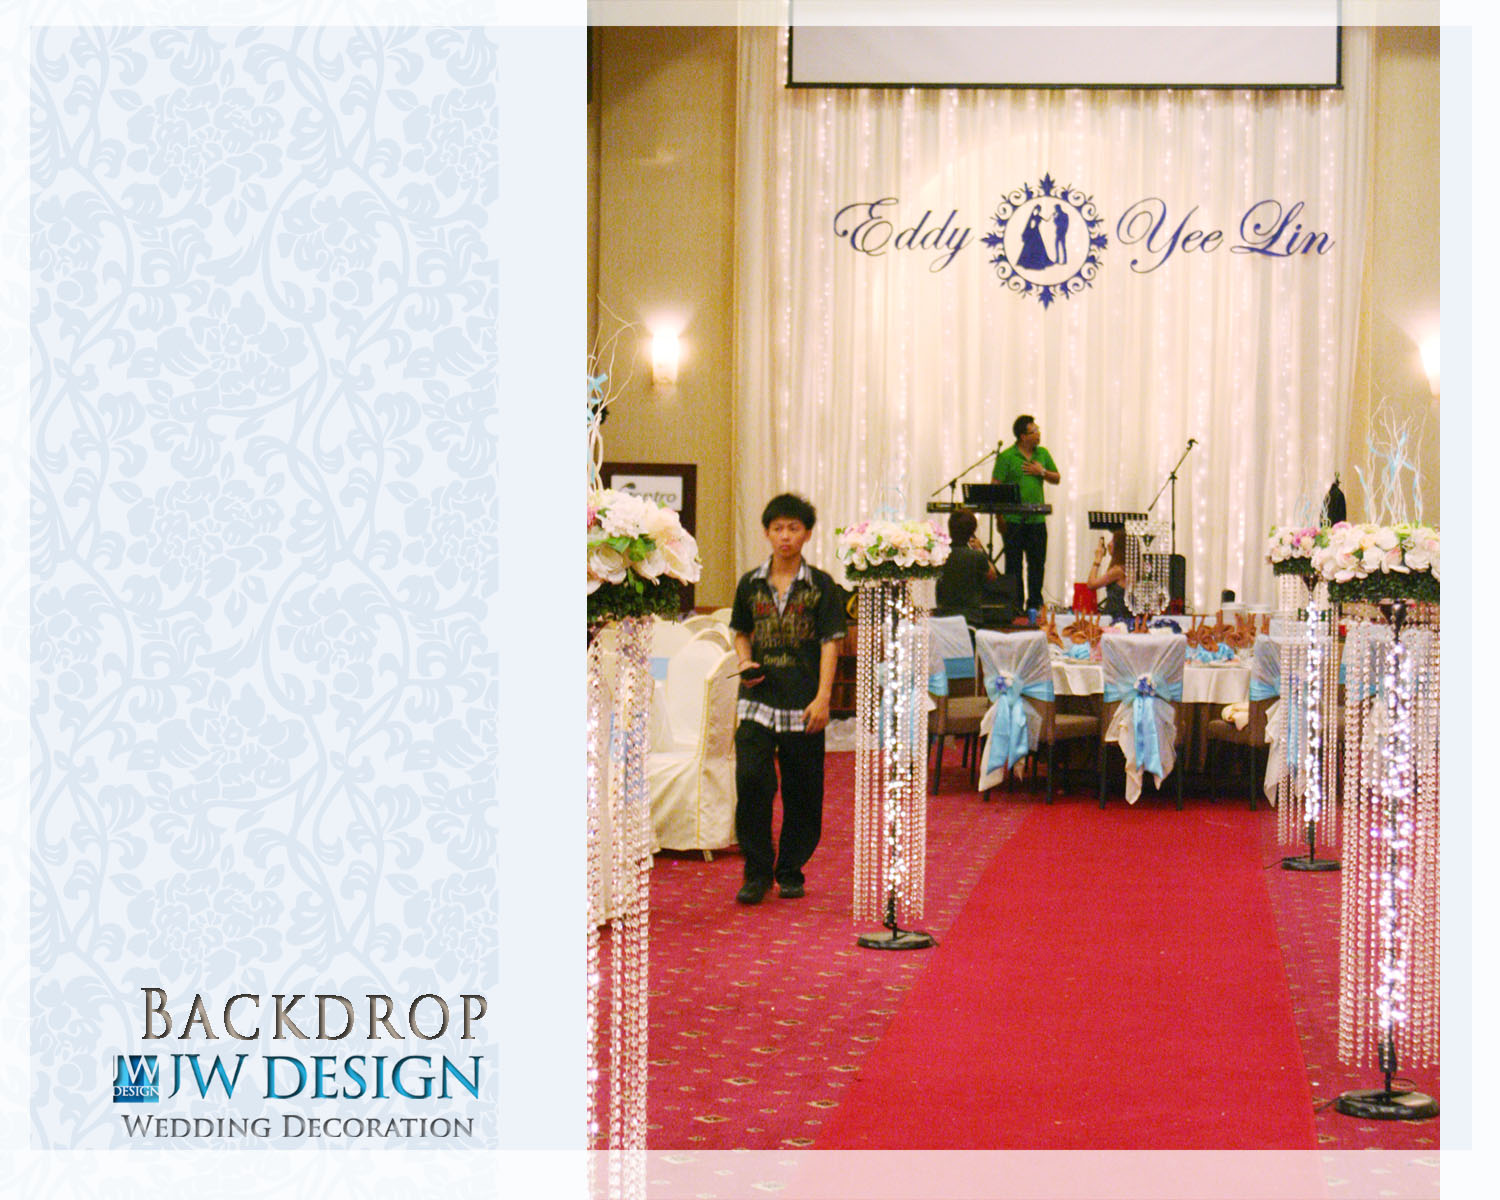 Jw design wedding decoration march 2012 eddy yee lins wedding blue vintage decoration junglespirit Gallery